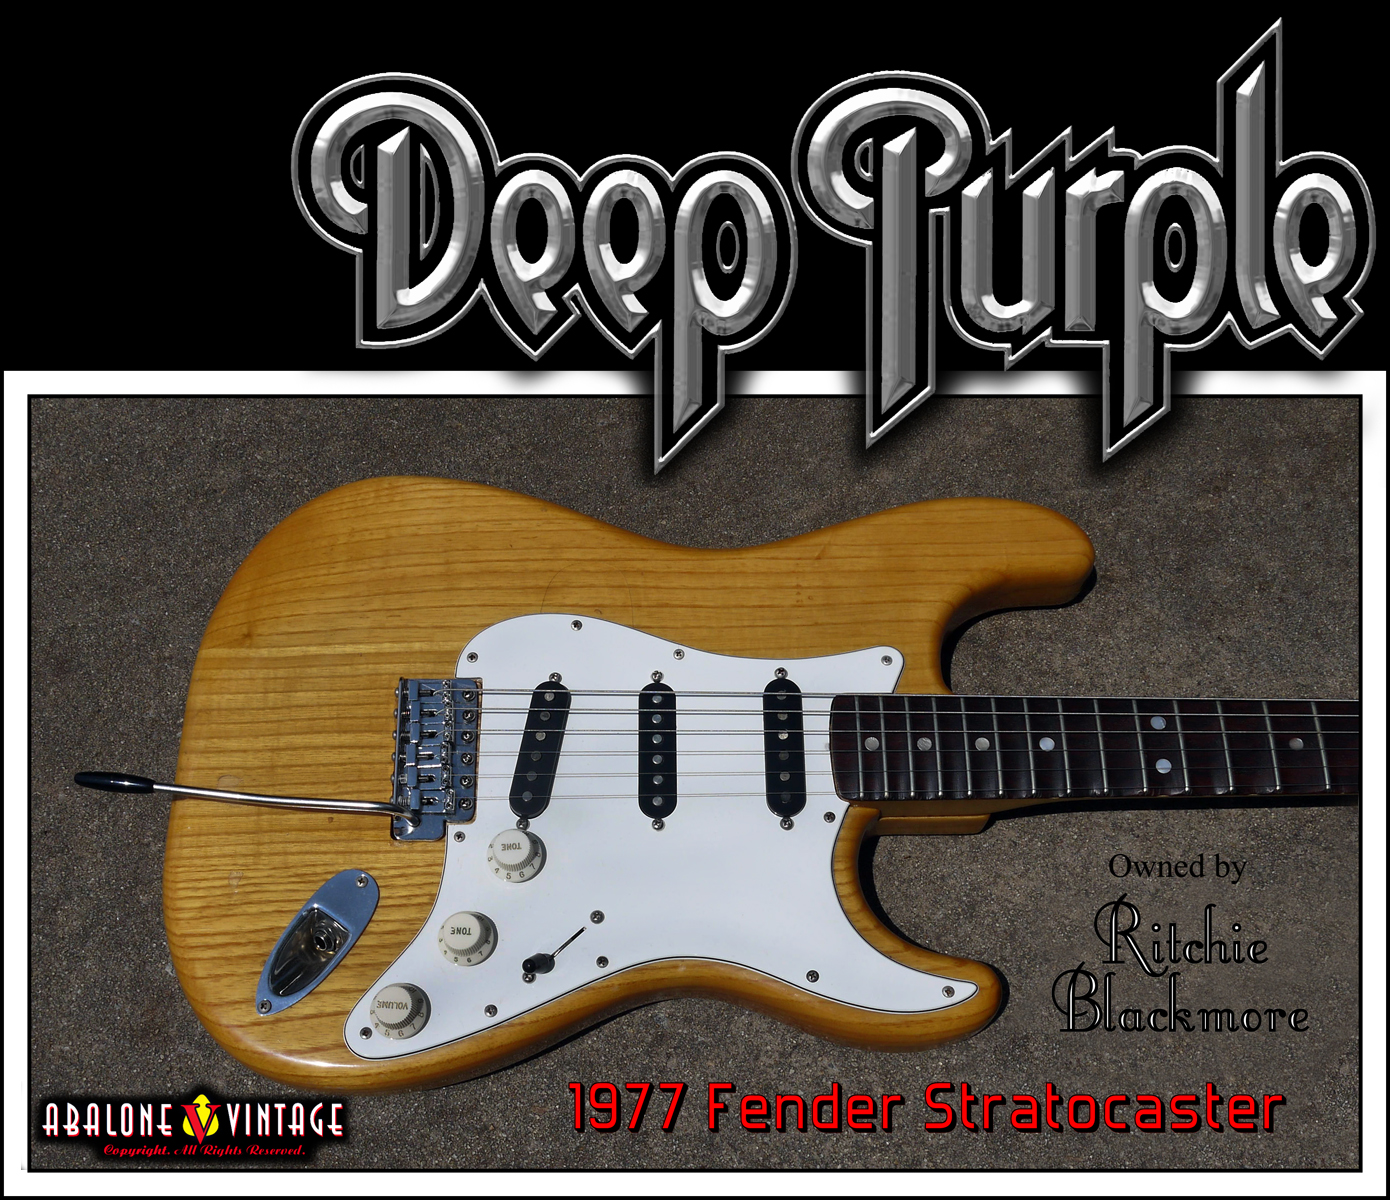 1977 fender stratocaster owned by ritchie blackmore of deep purple and rainbow.